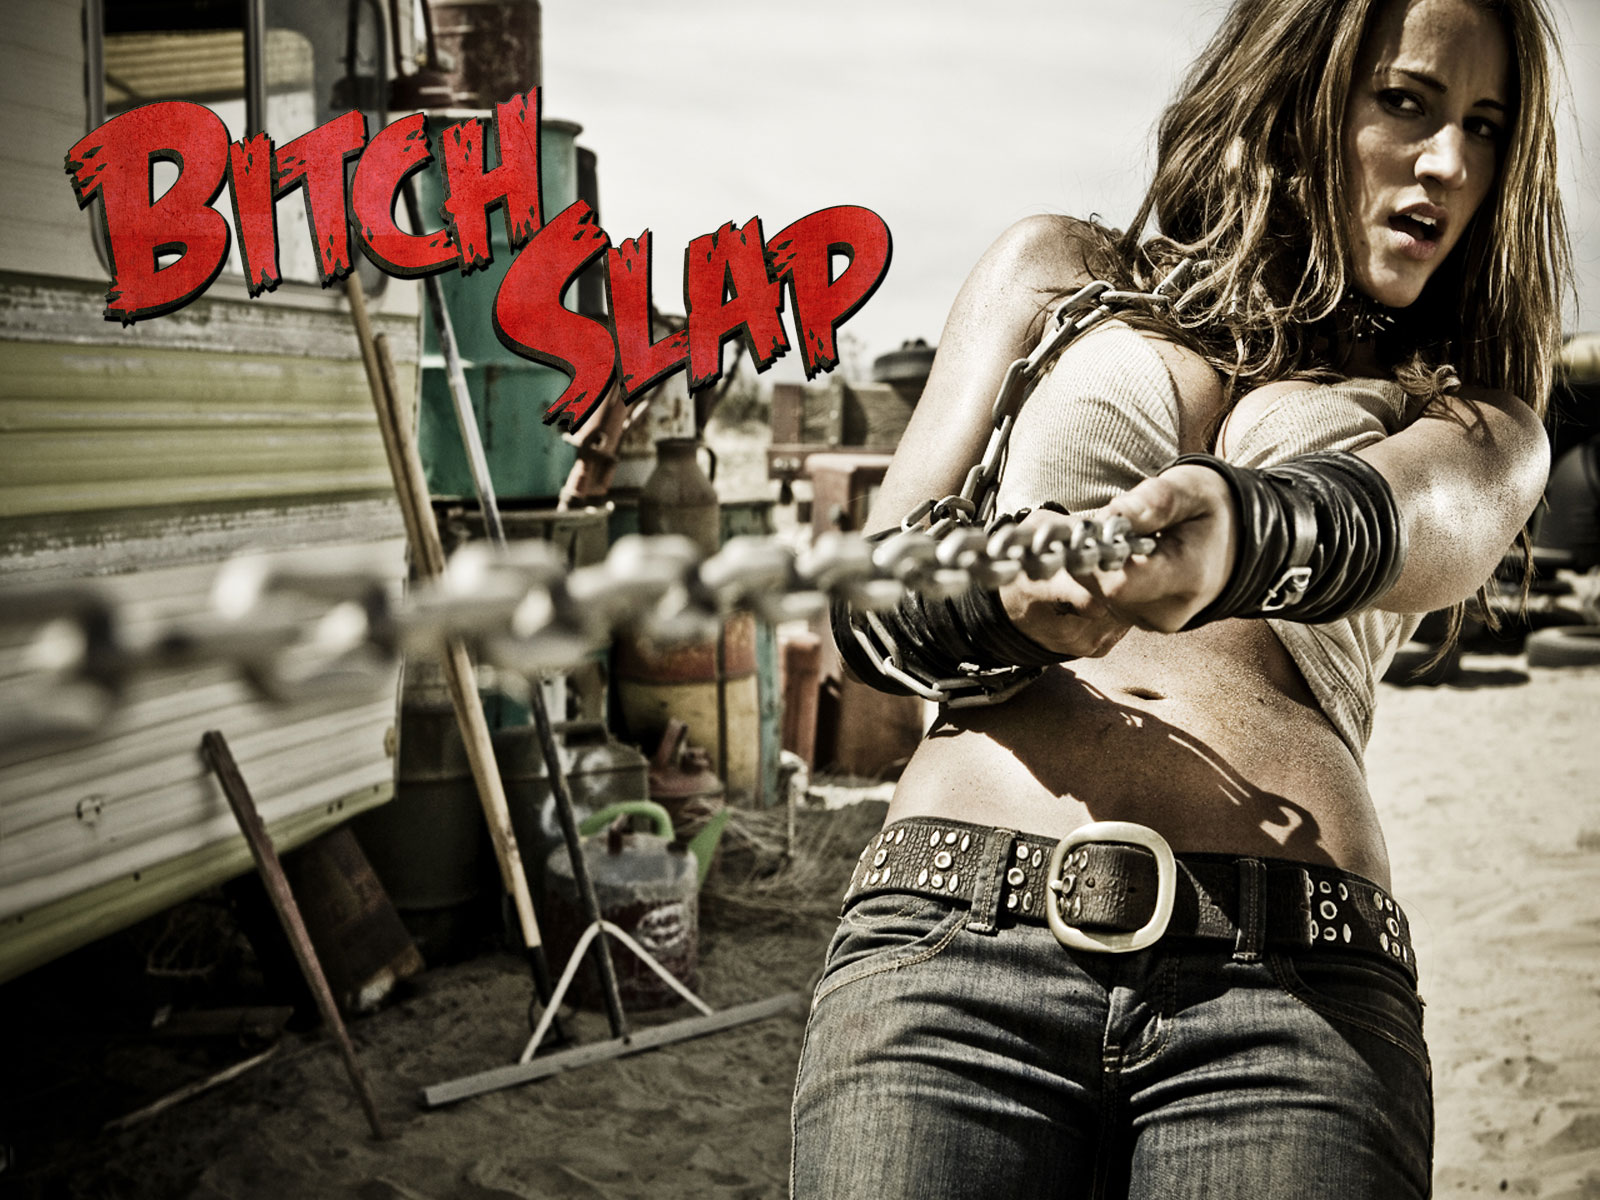 Bitch Slap